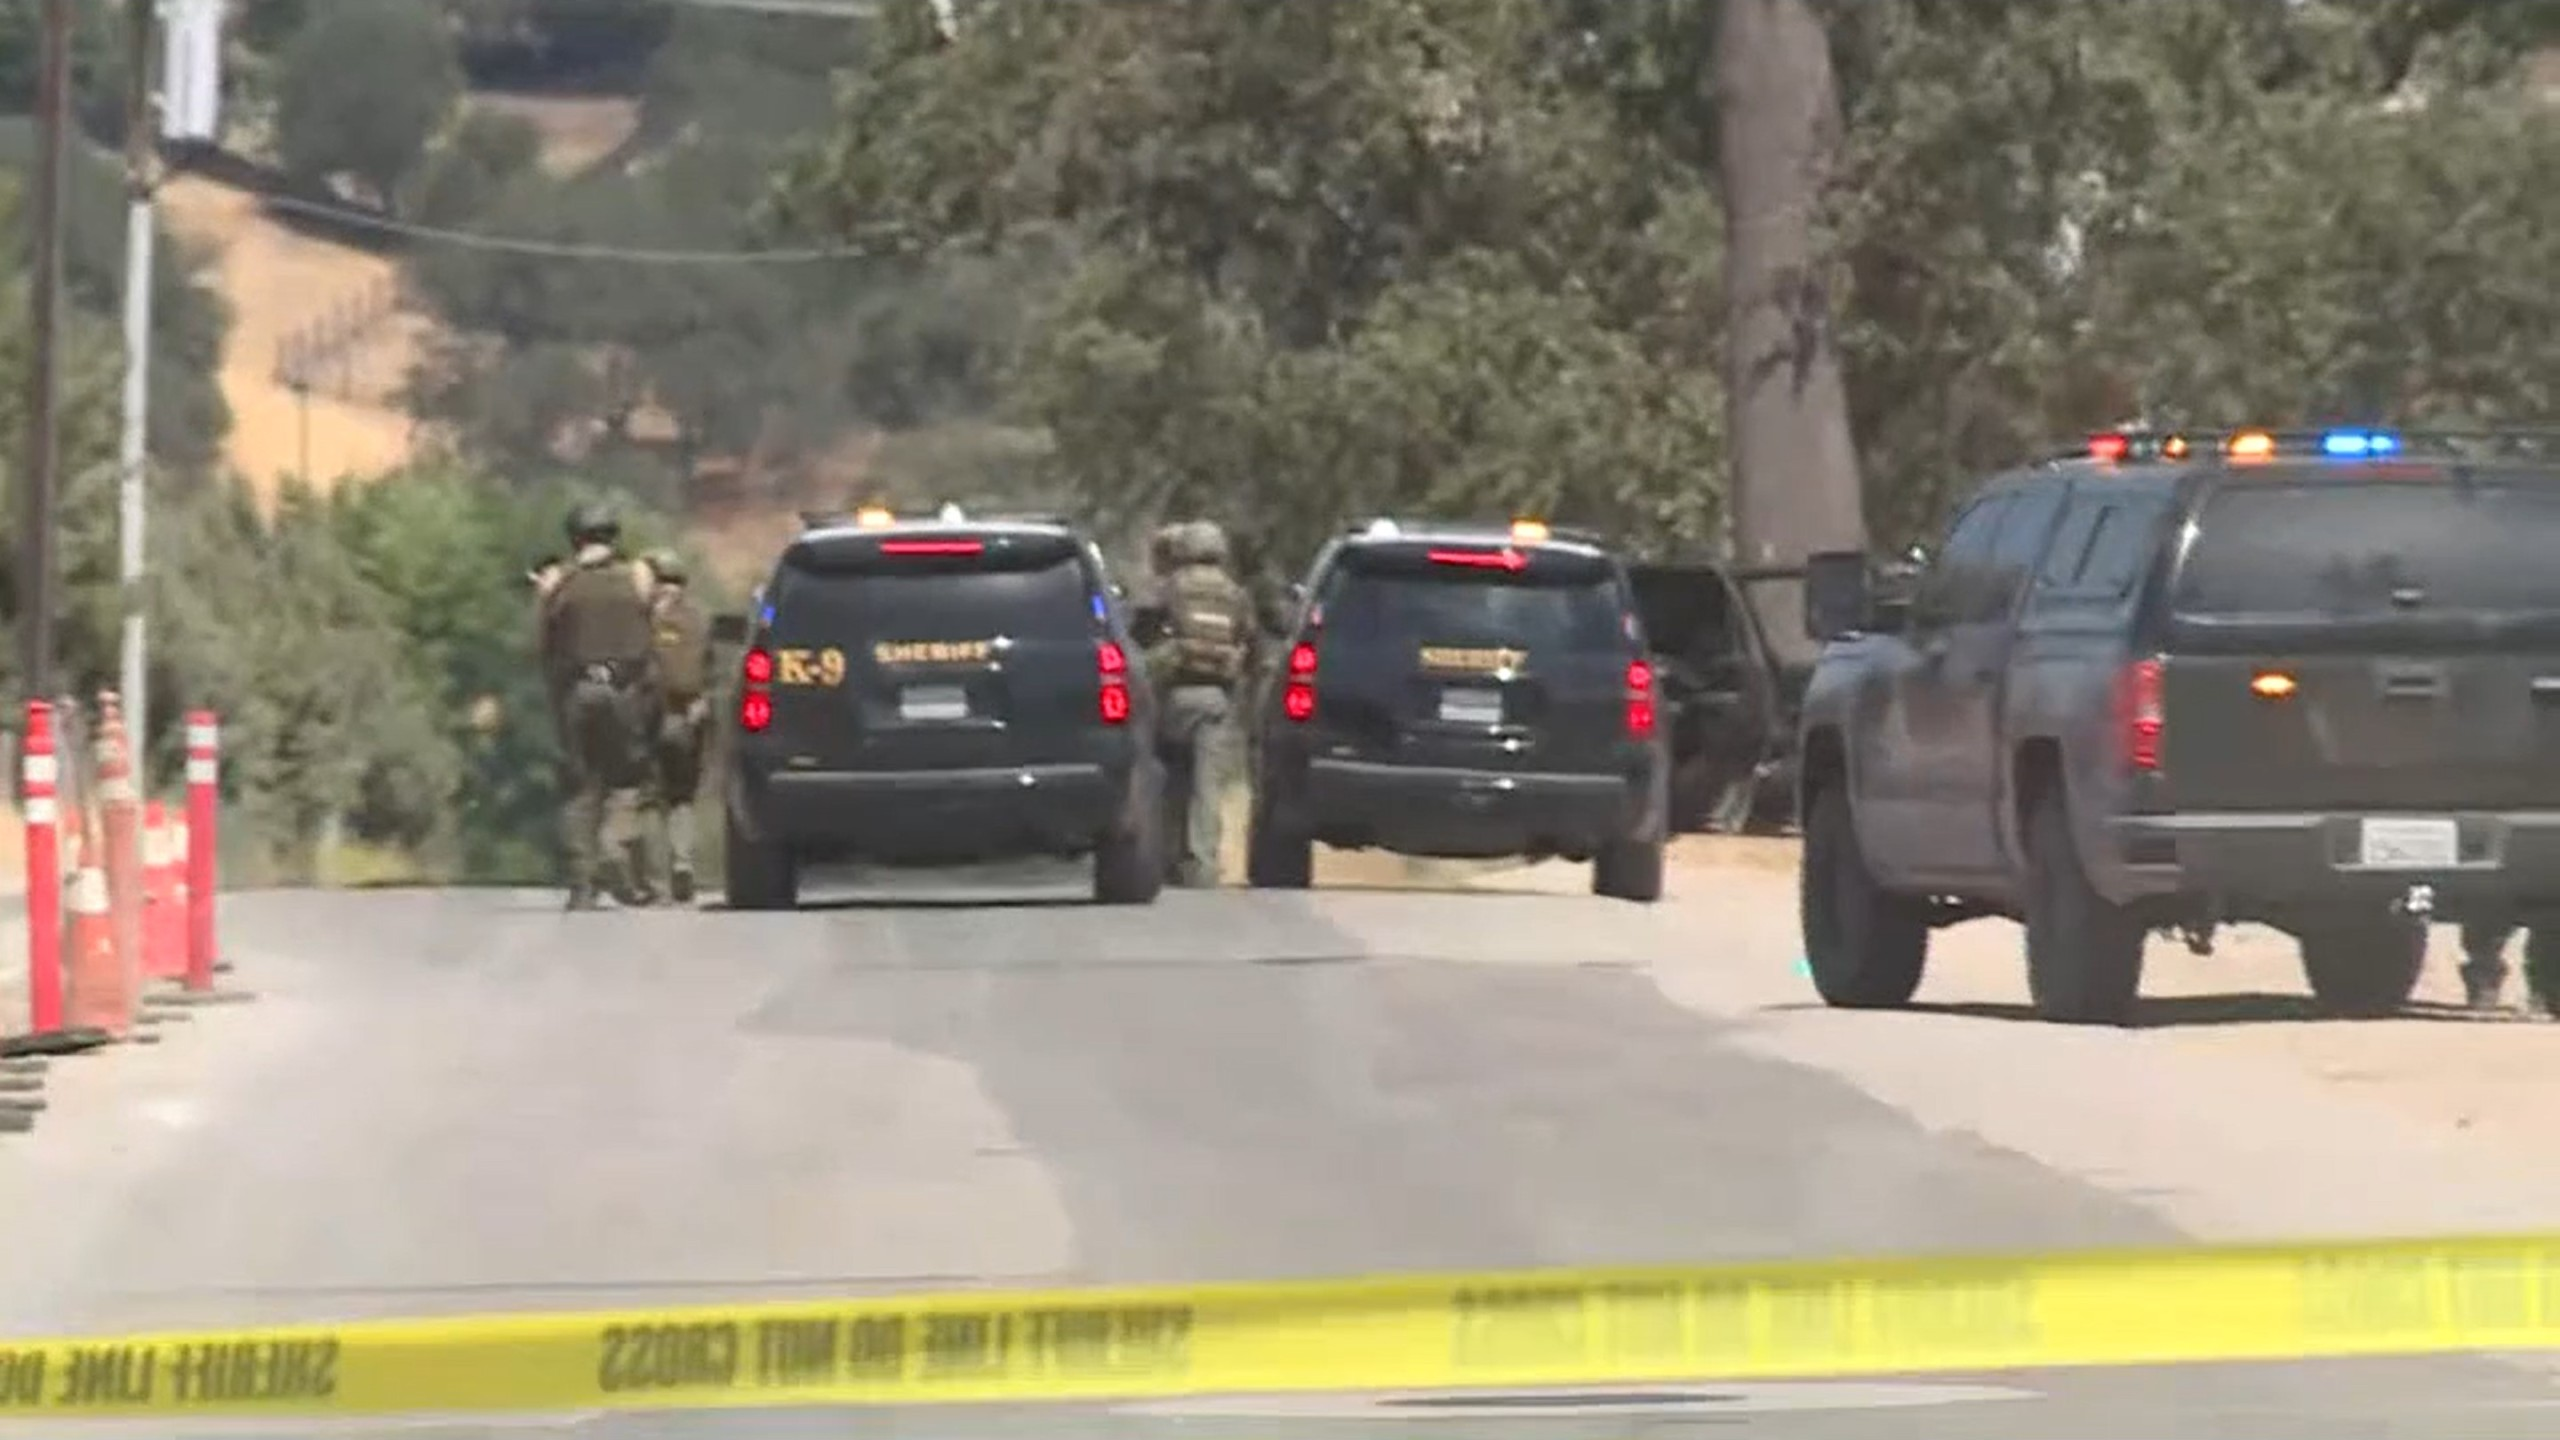 Several officers wounded, suspect down in 2nd active shooter case in Paso Robles, California